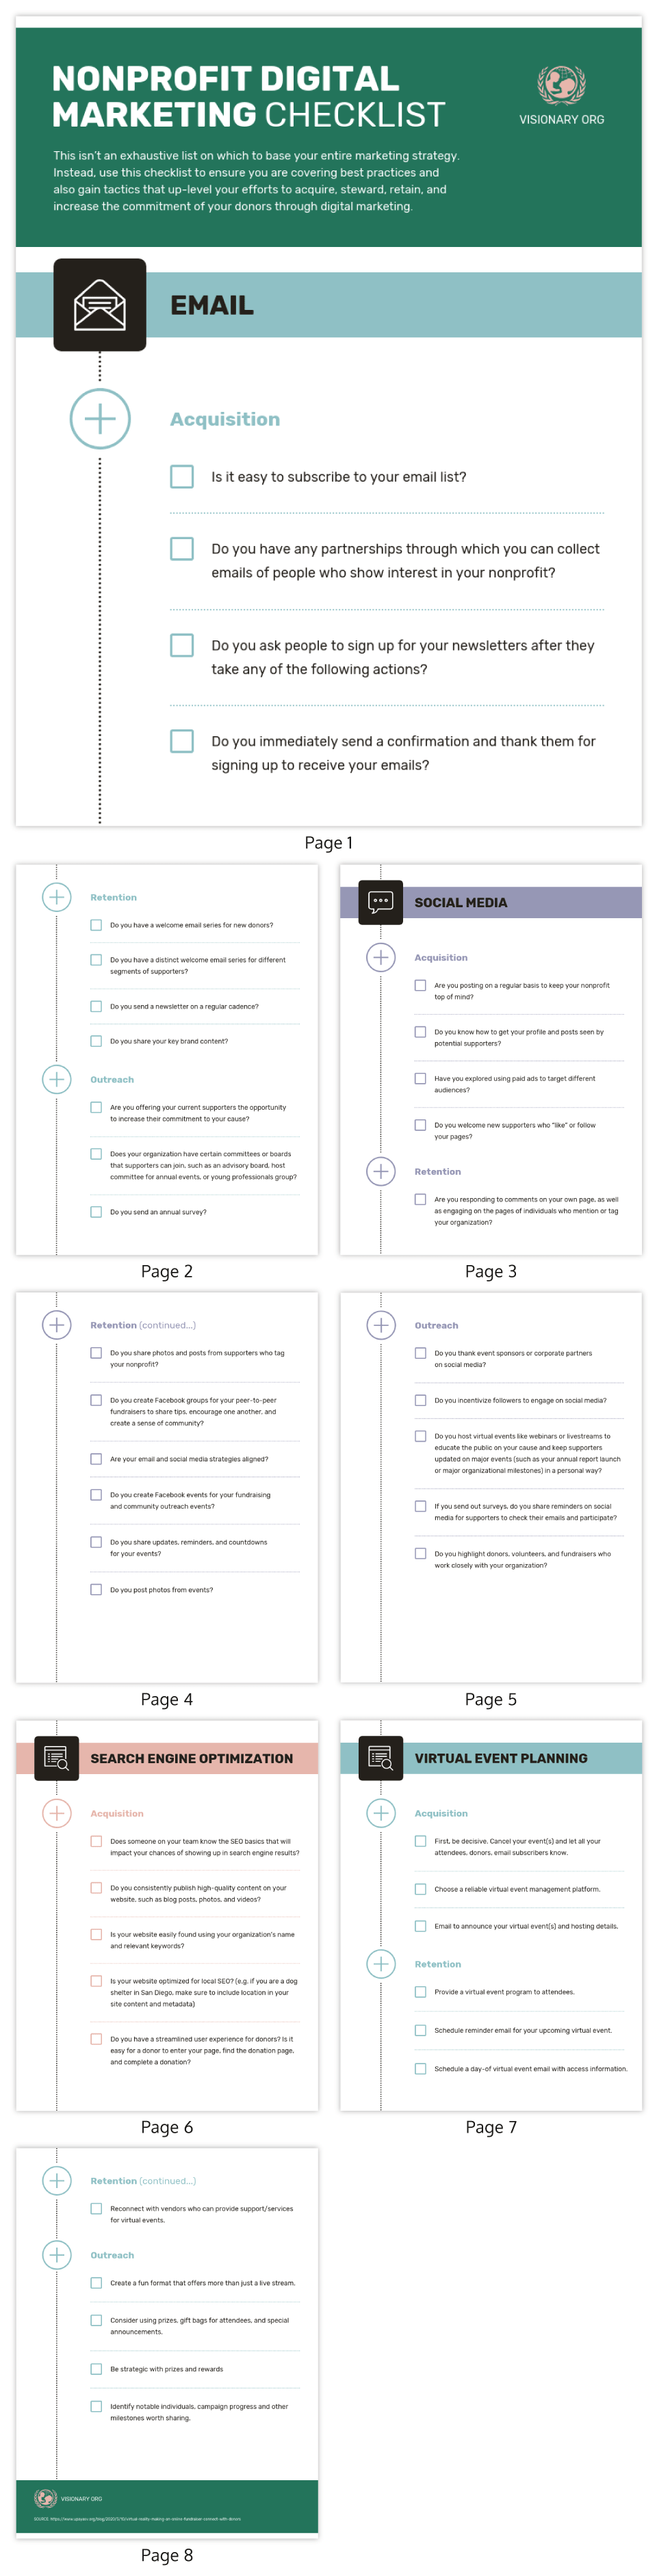 Checklist Infographic Template Nonprofit Digital Marketing